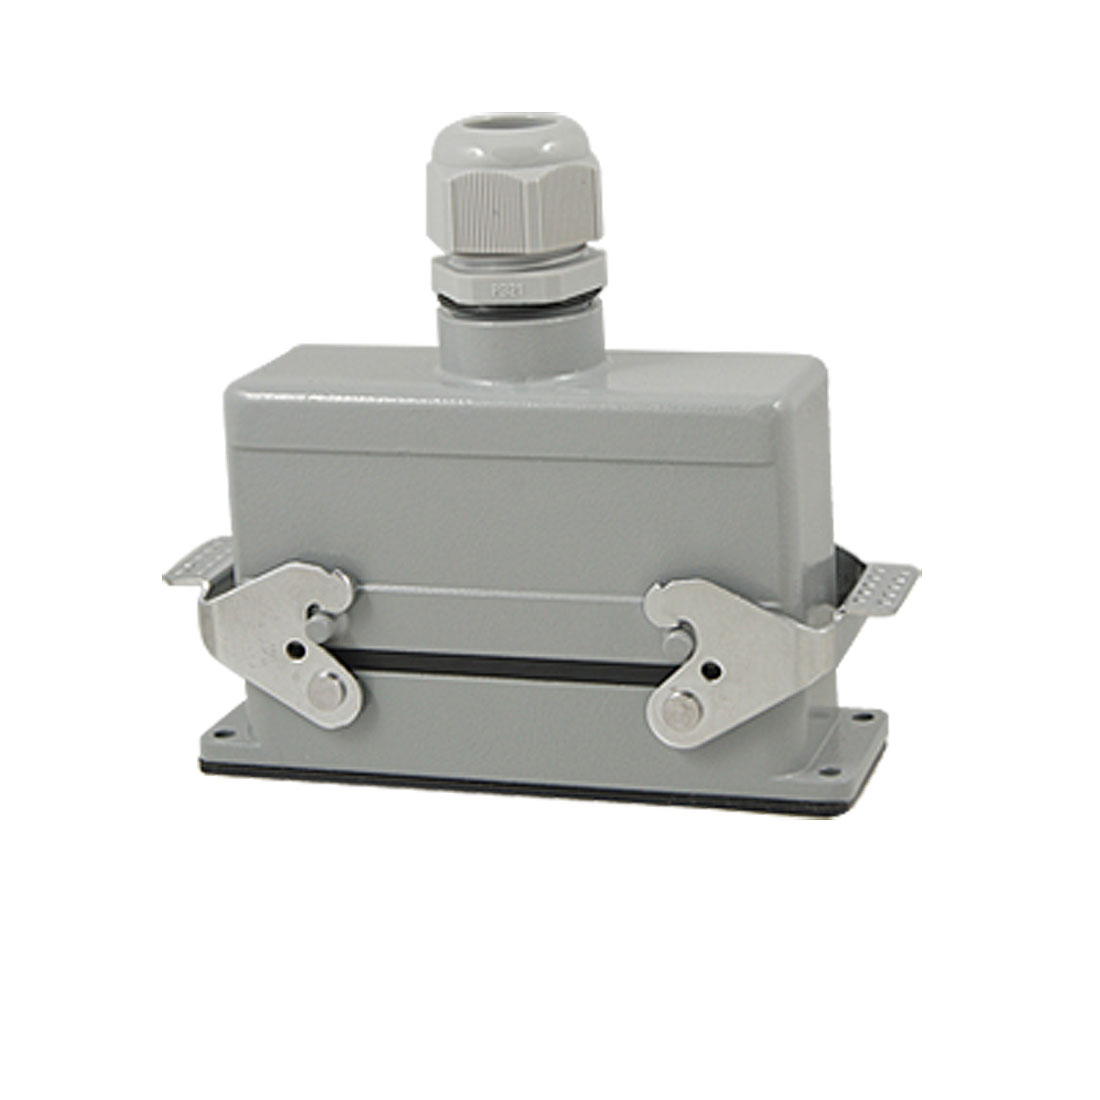 Vertical PG21 Entry Hood 24 Pin Crimp Terminals Connector